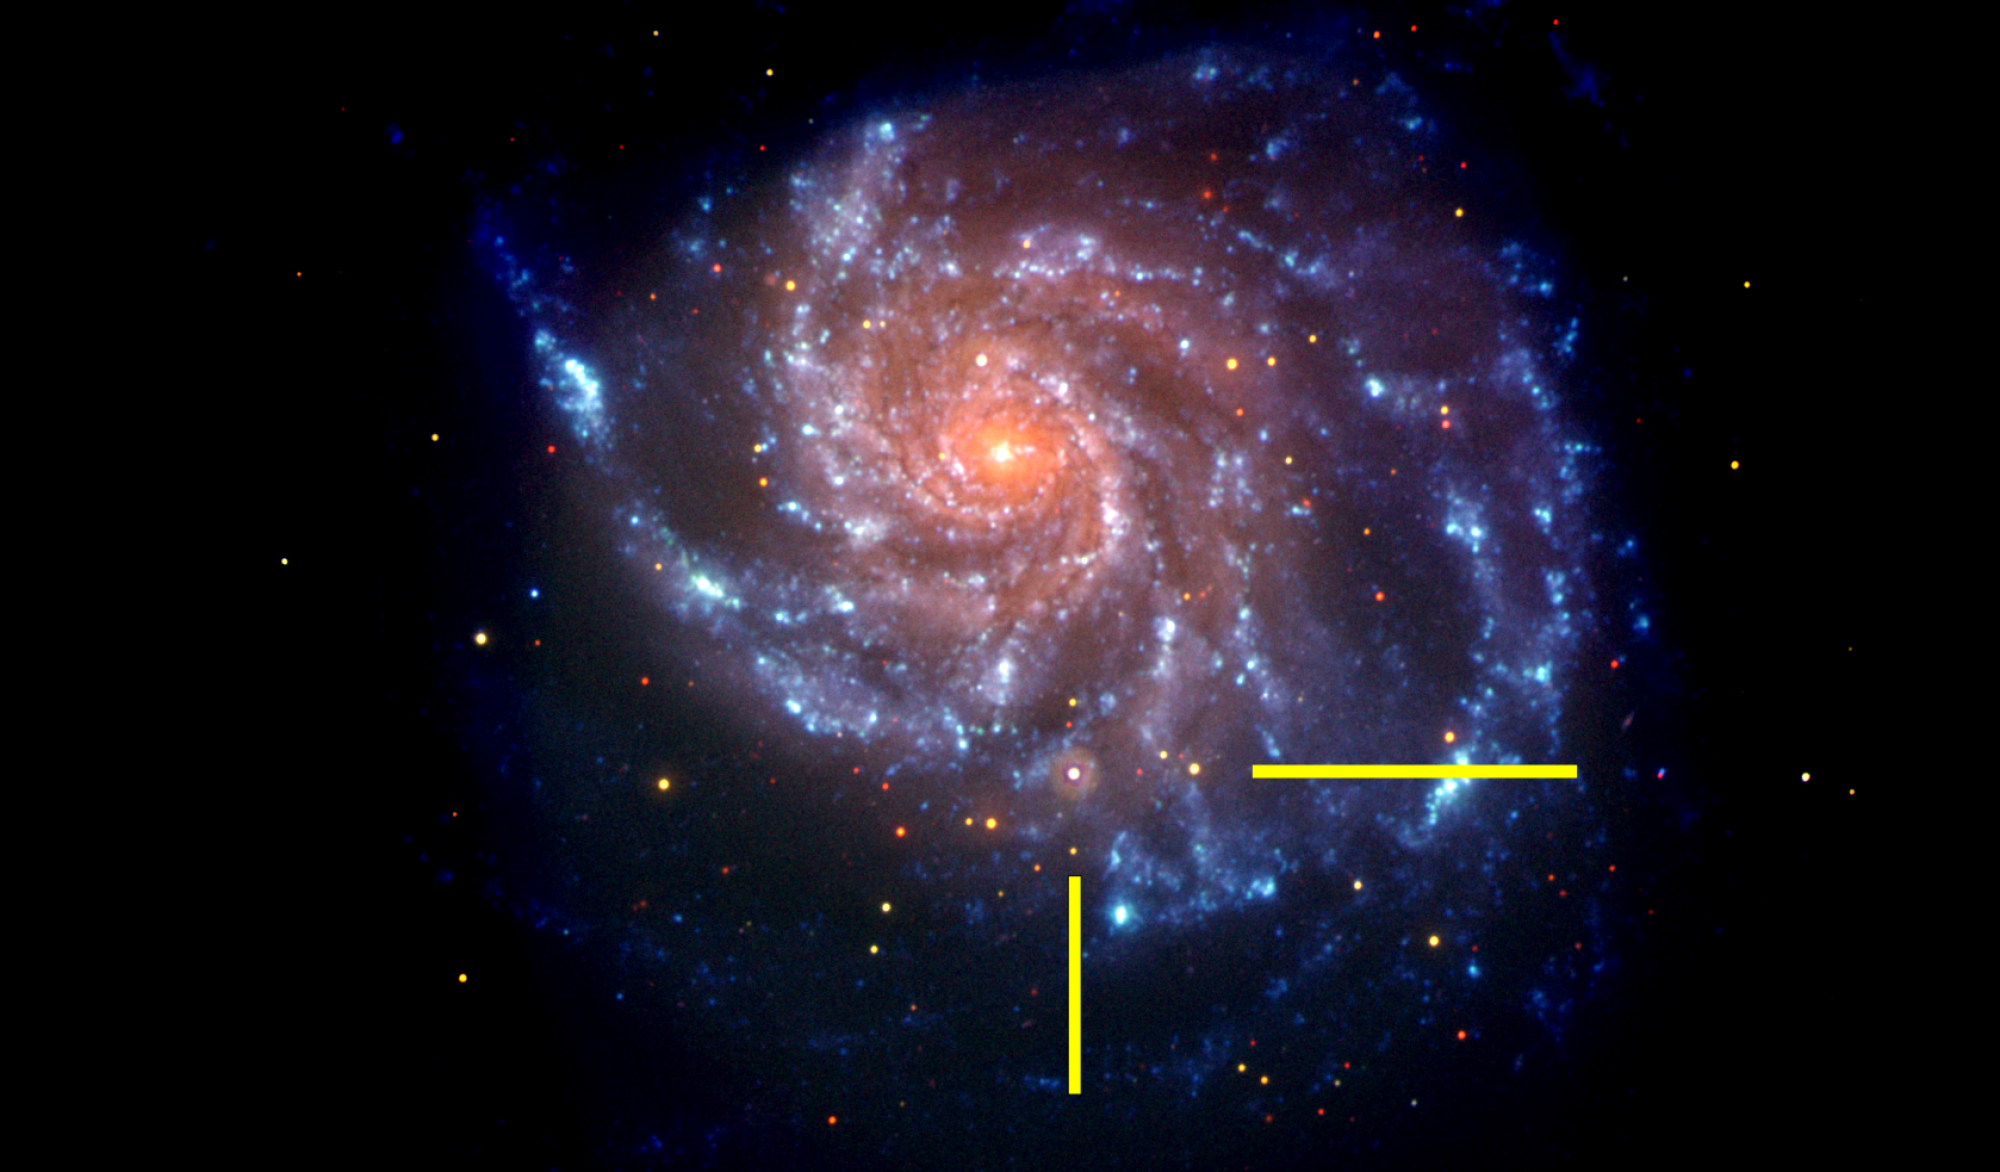 That same galaxy in a NASA Swift image, with bars indicating the location of supernova SN 2011fe. The Swift  image is a false-color image with UV emission blue and optical emission red.